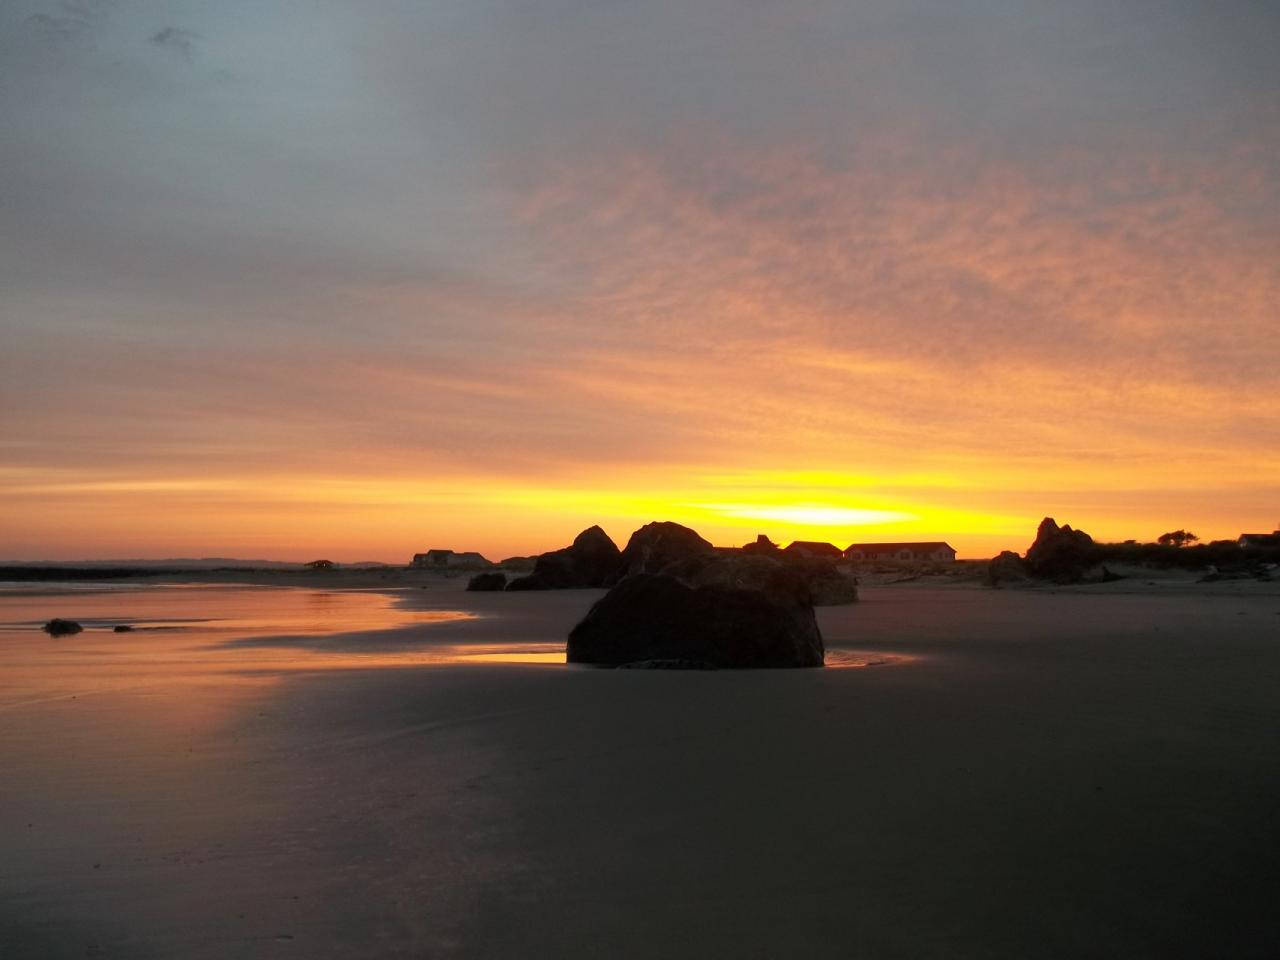 The full glory of sunrise over the Coquille River and Mile 102 is one of the many splendors coast walkers can experience.